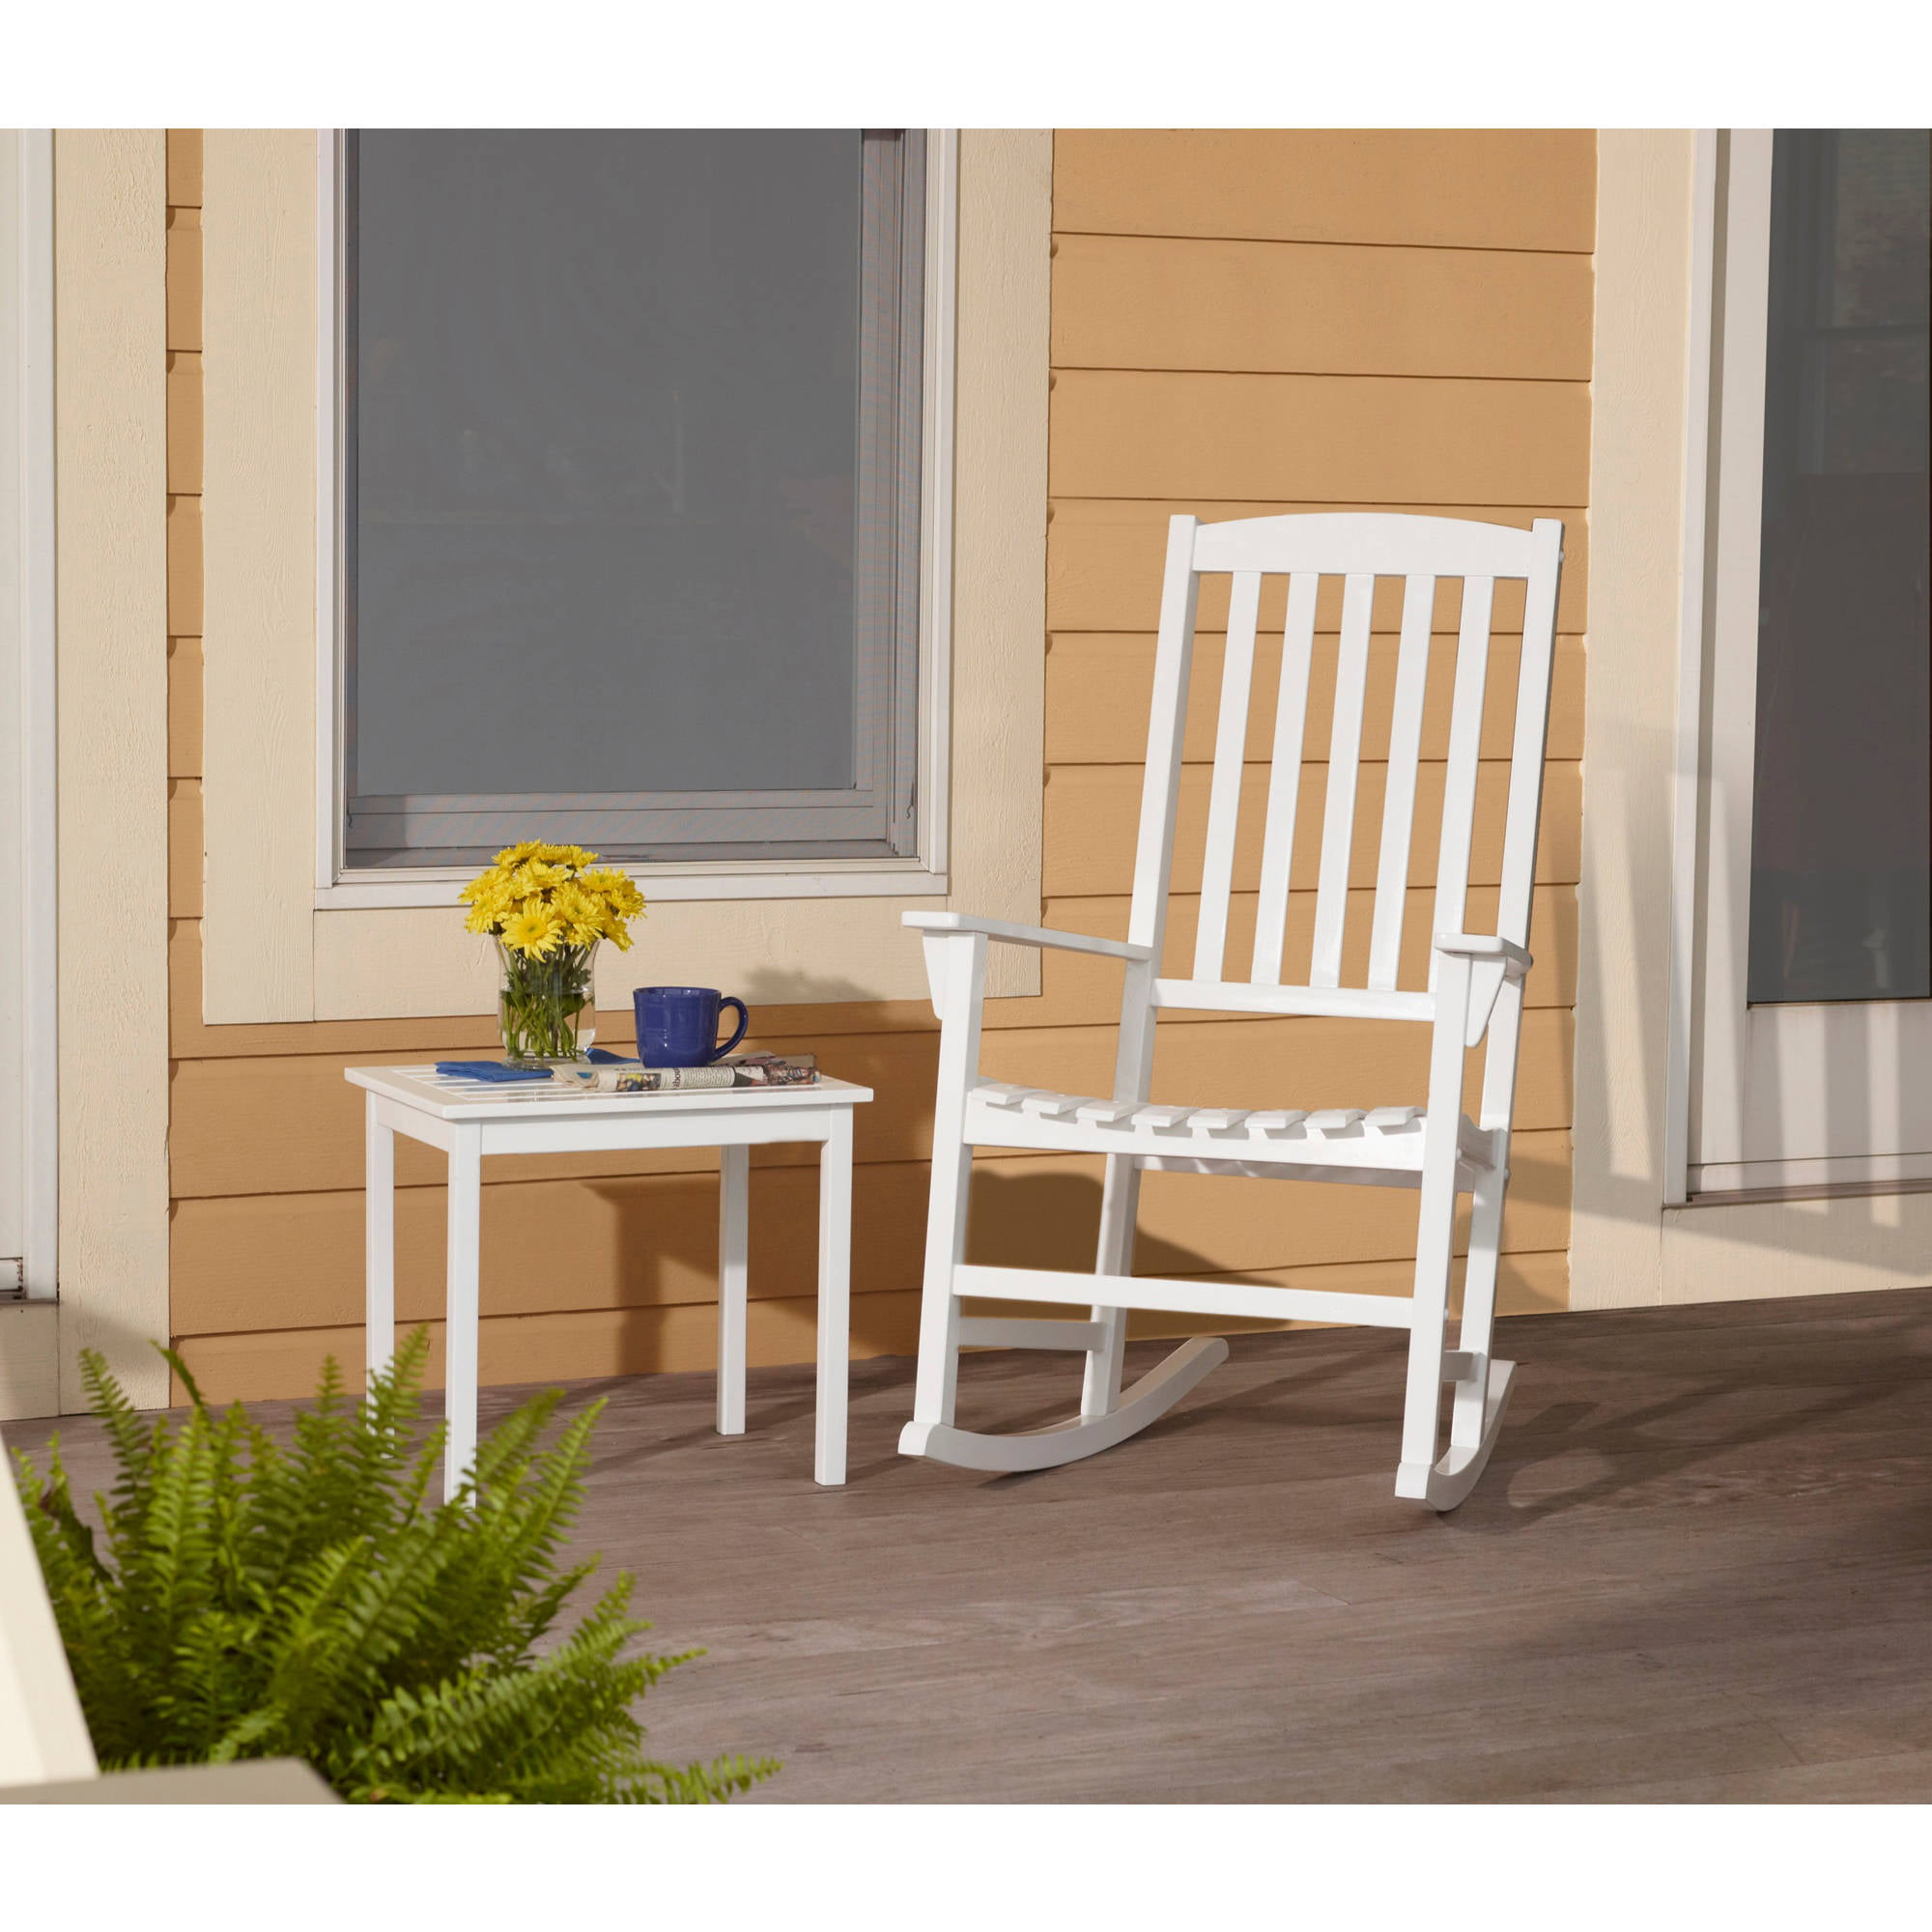 mainstays outdoor rocking chair white walmart com